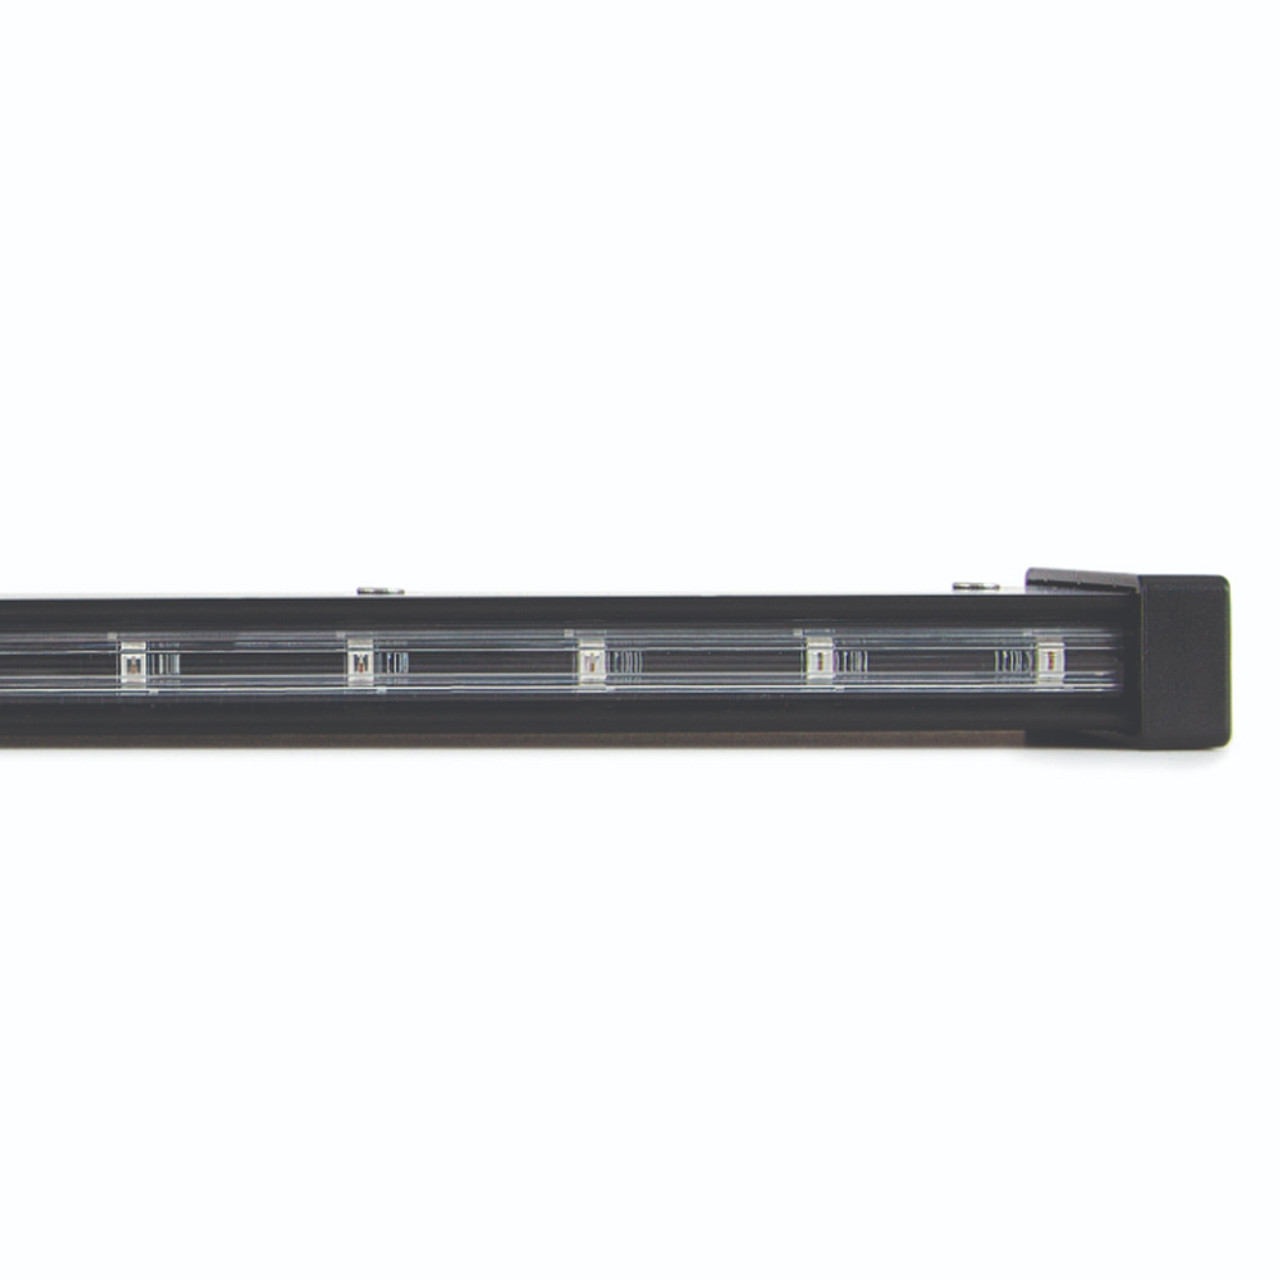 SoundOff Signal ENL172 nLINE 60 inch Running LED Light Bar Stick Surface Mounts with Bracket, fits Sedans, SUVs, and Trucks, Compact Aluminum Housing, Weather Resistant, Newly Designed